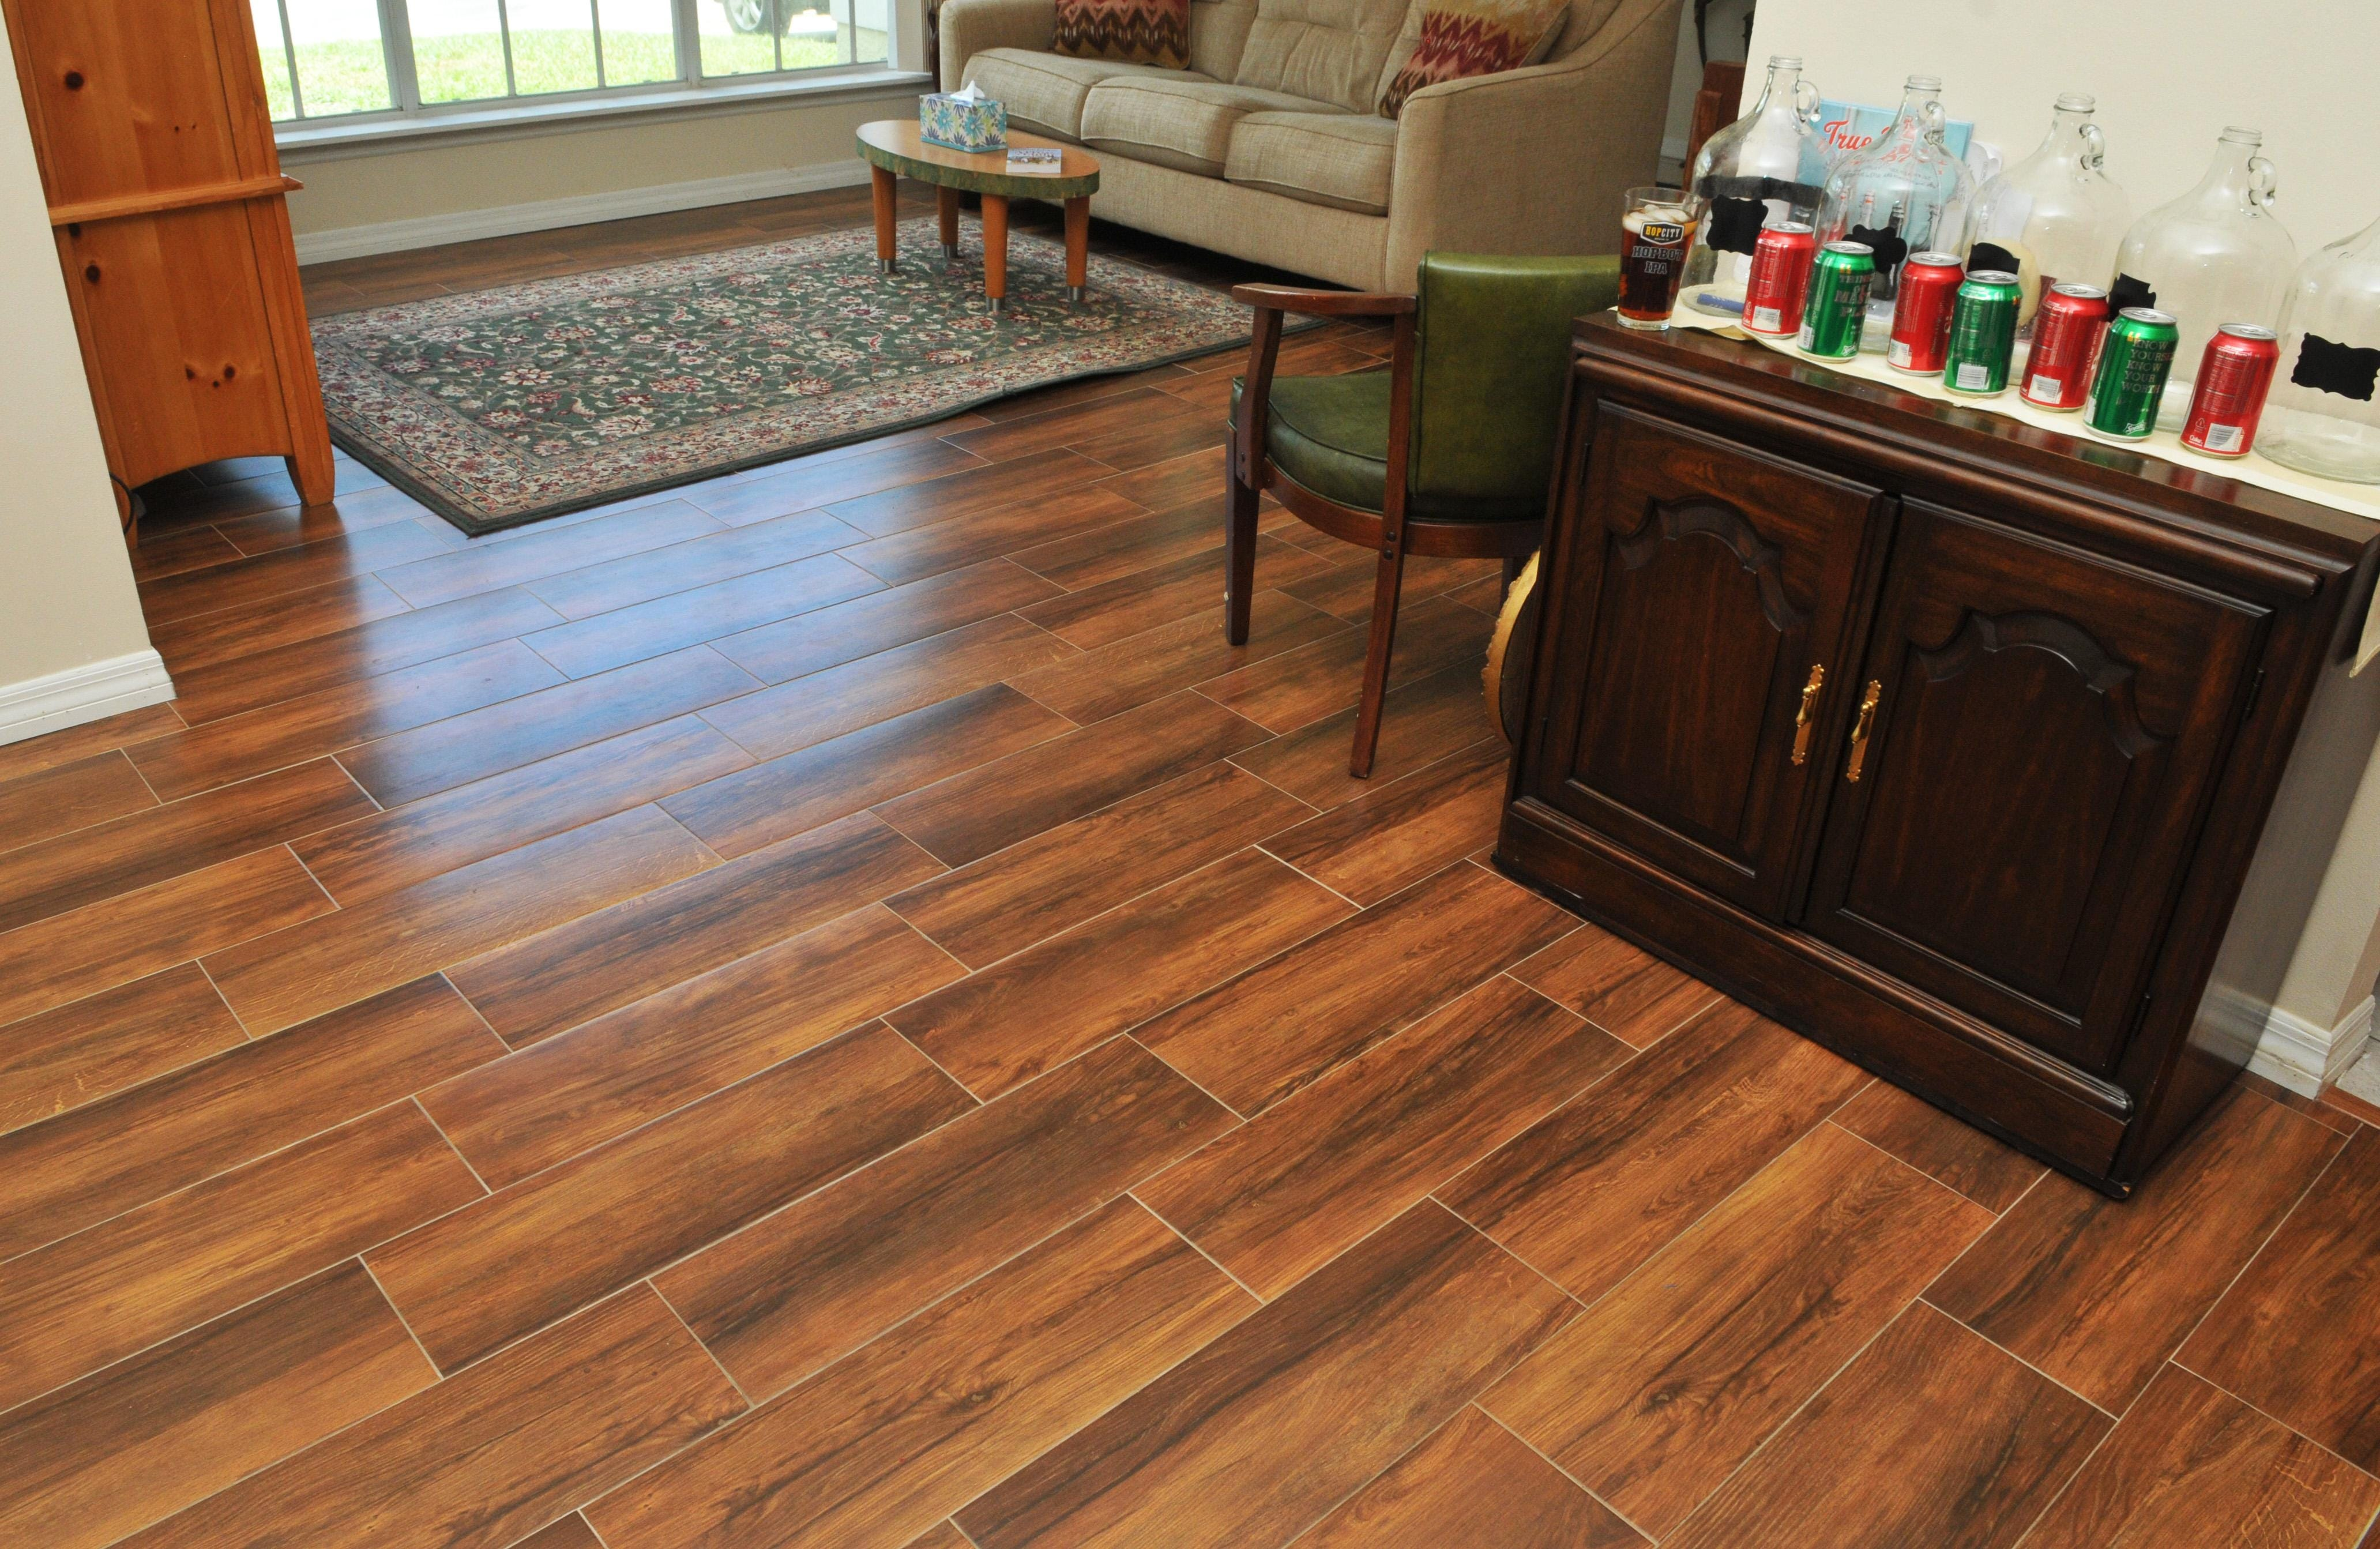 The Engle Home In Palm Shores Recently Had The Floors